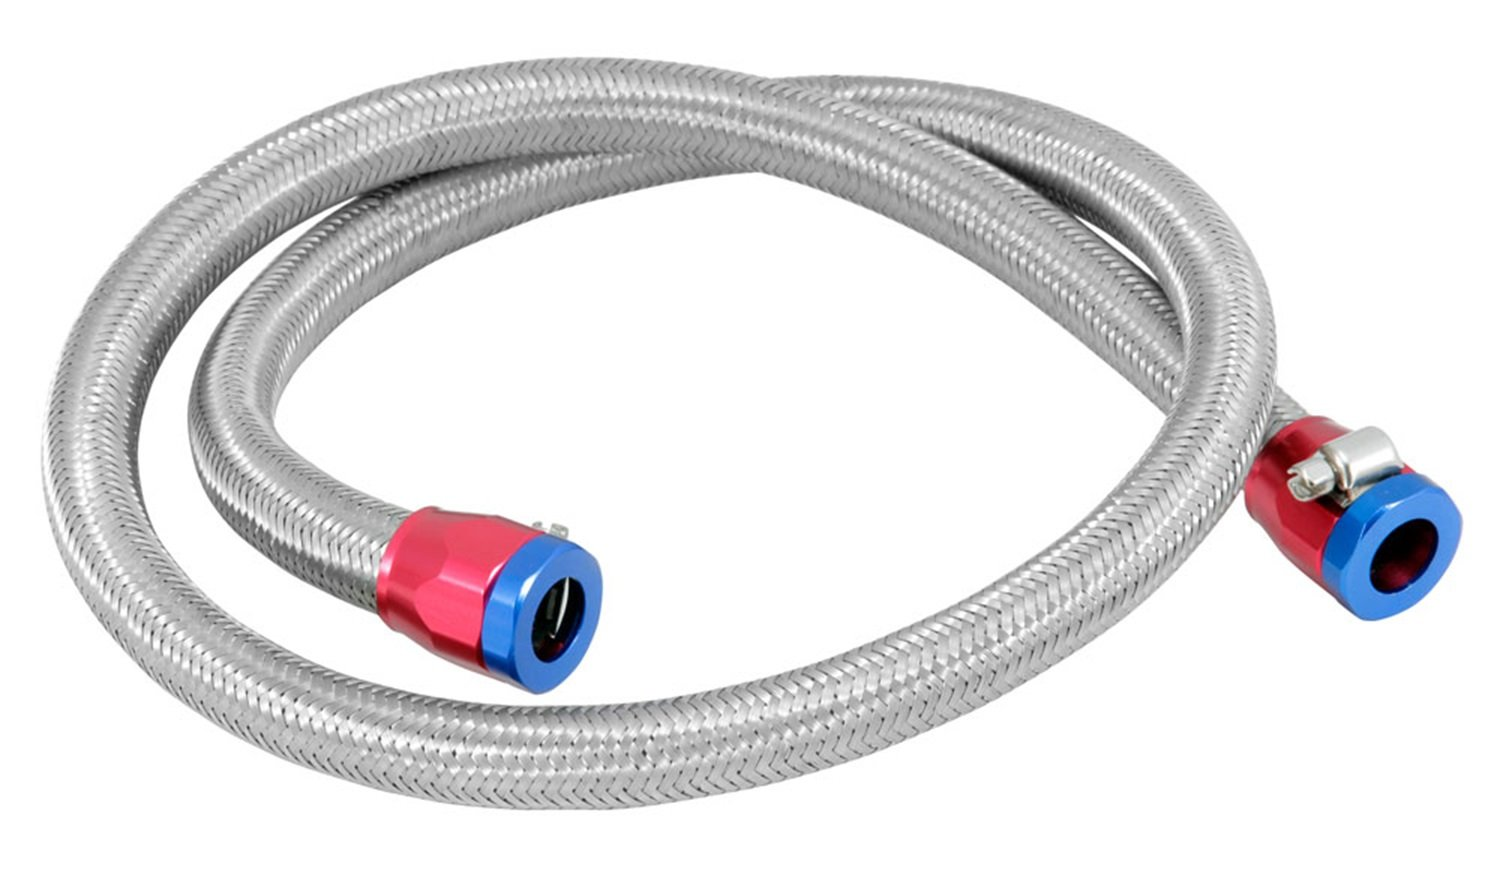 Spectre Performance (29490) 3/8'' x 3' Fuel Line Kit with Clamps